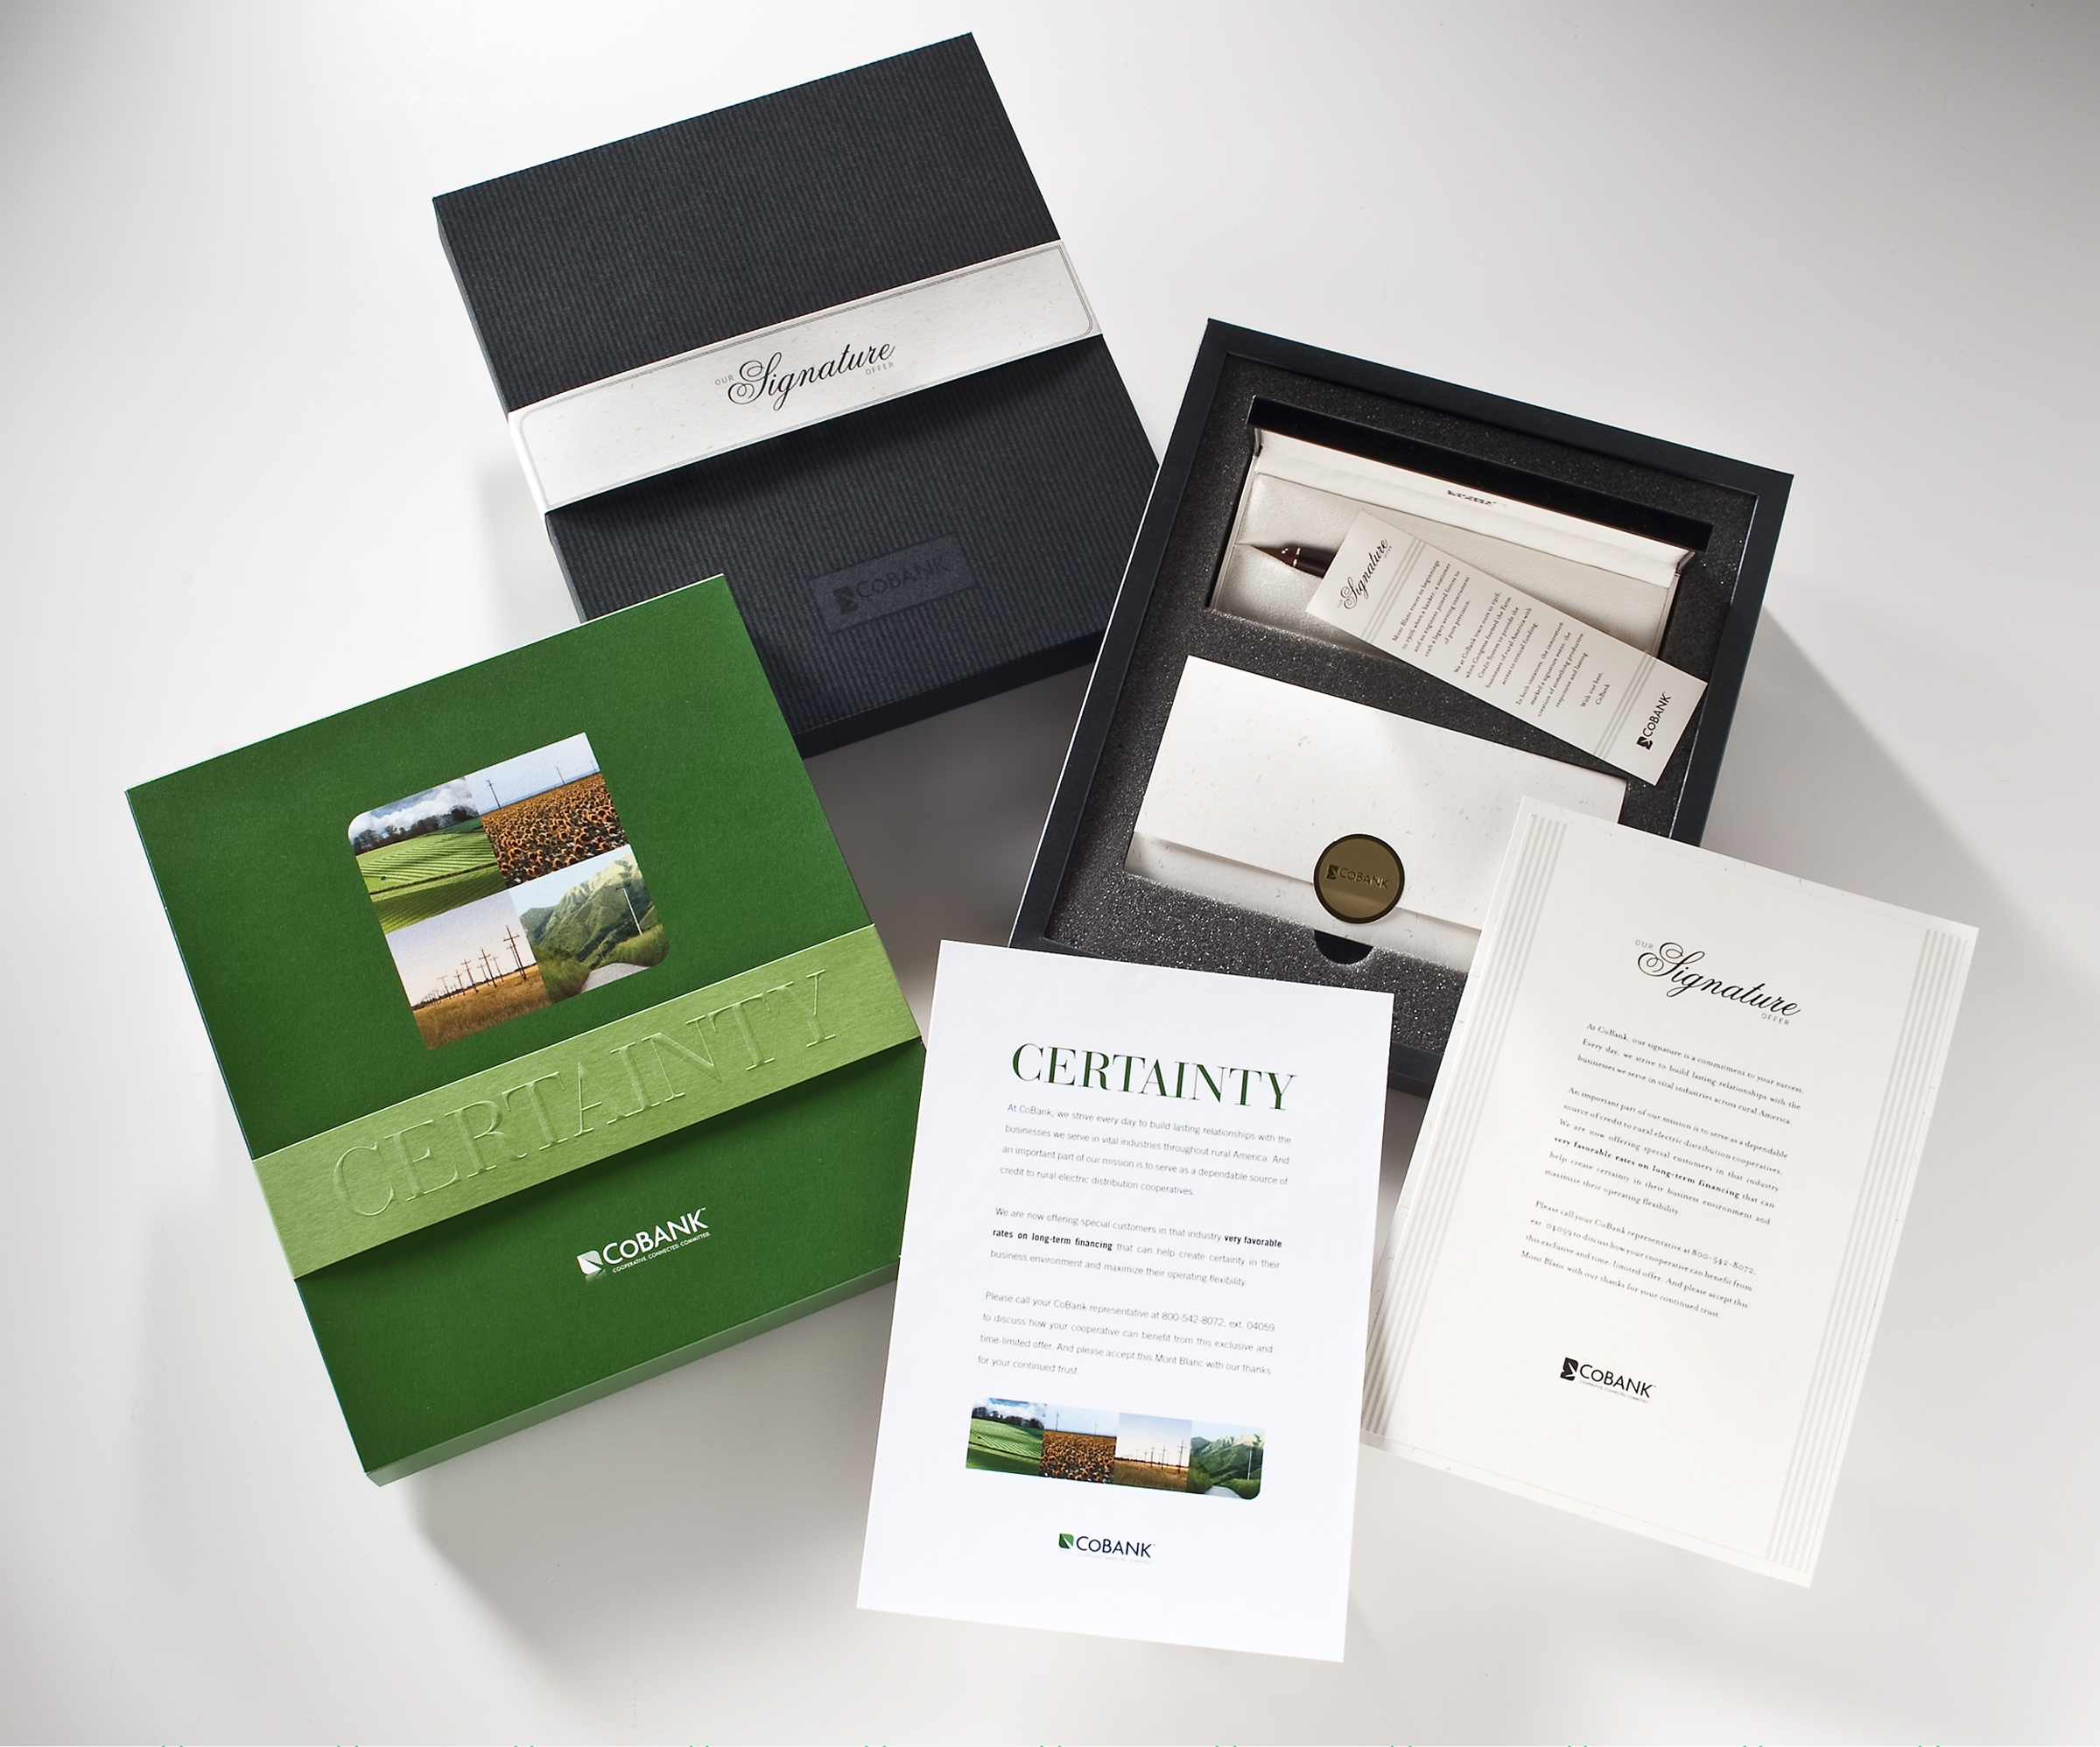 enzed_2016website_packaging_03cobank